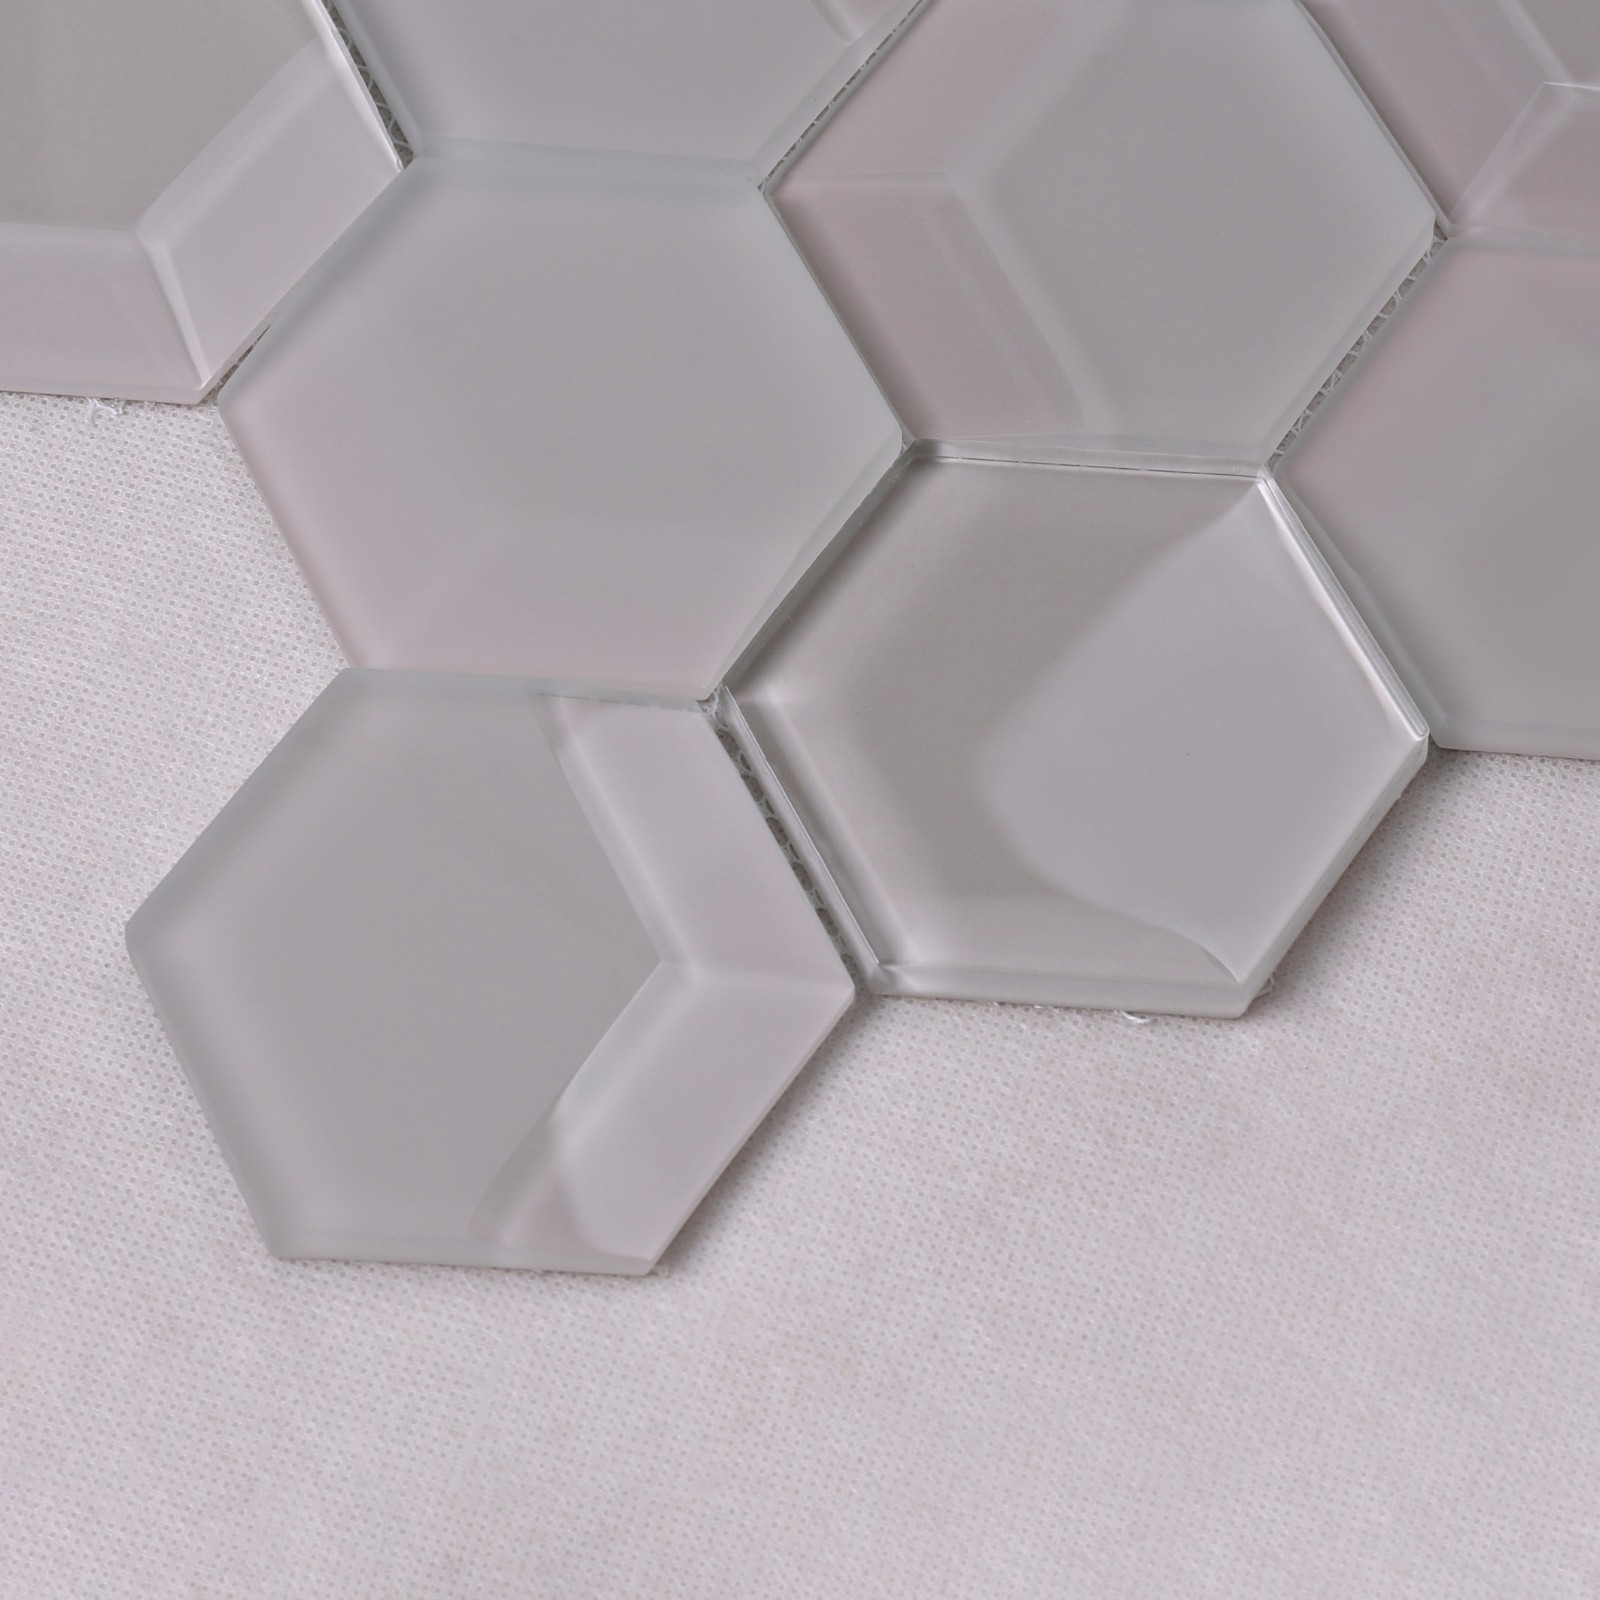 Heng Xing-Oem Green Glass Tile Manufacturer, White Glass Backsplash | Heng Xing-2